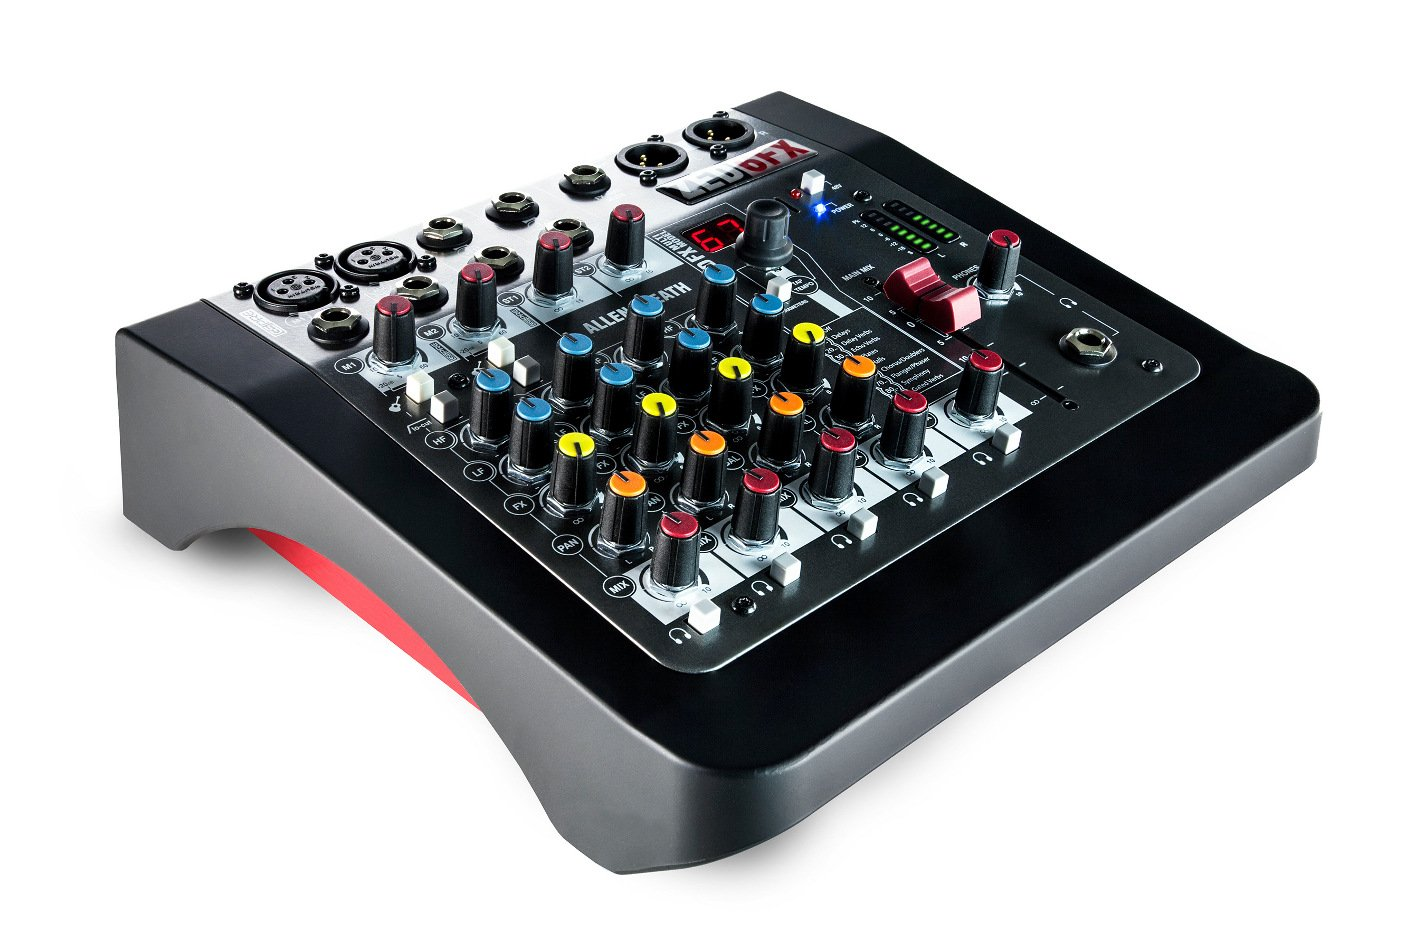 allen heath zed 6fx 6 channel analog mixer with effects instrument inputs full compass systems. Black Bedroom Furniture Sets. Home Design Ideas